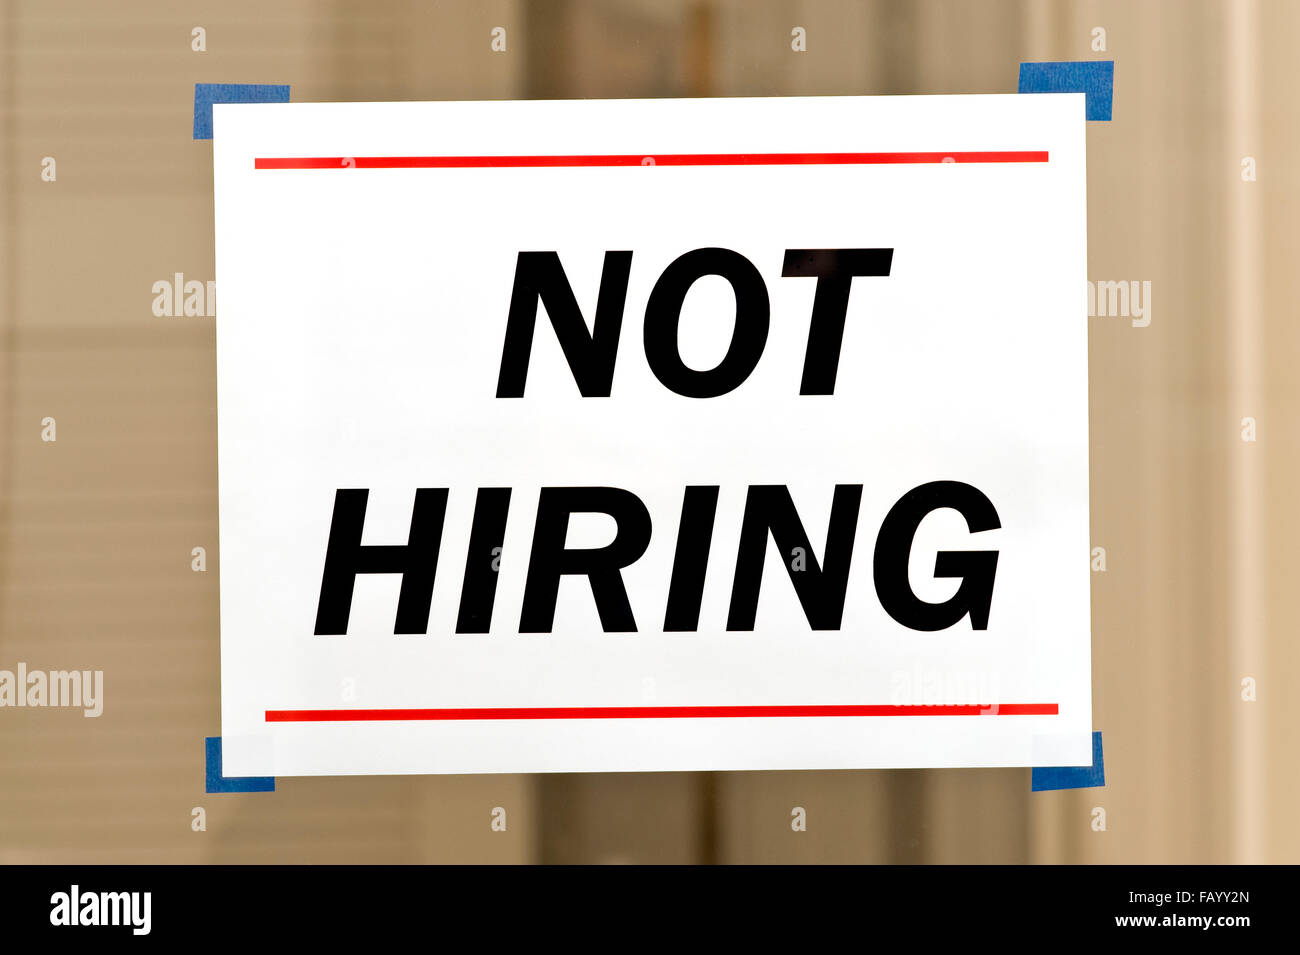 Not Hiring Sign Stock Photo